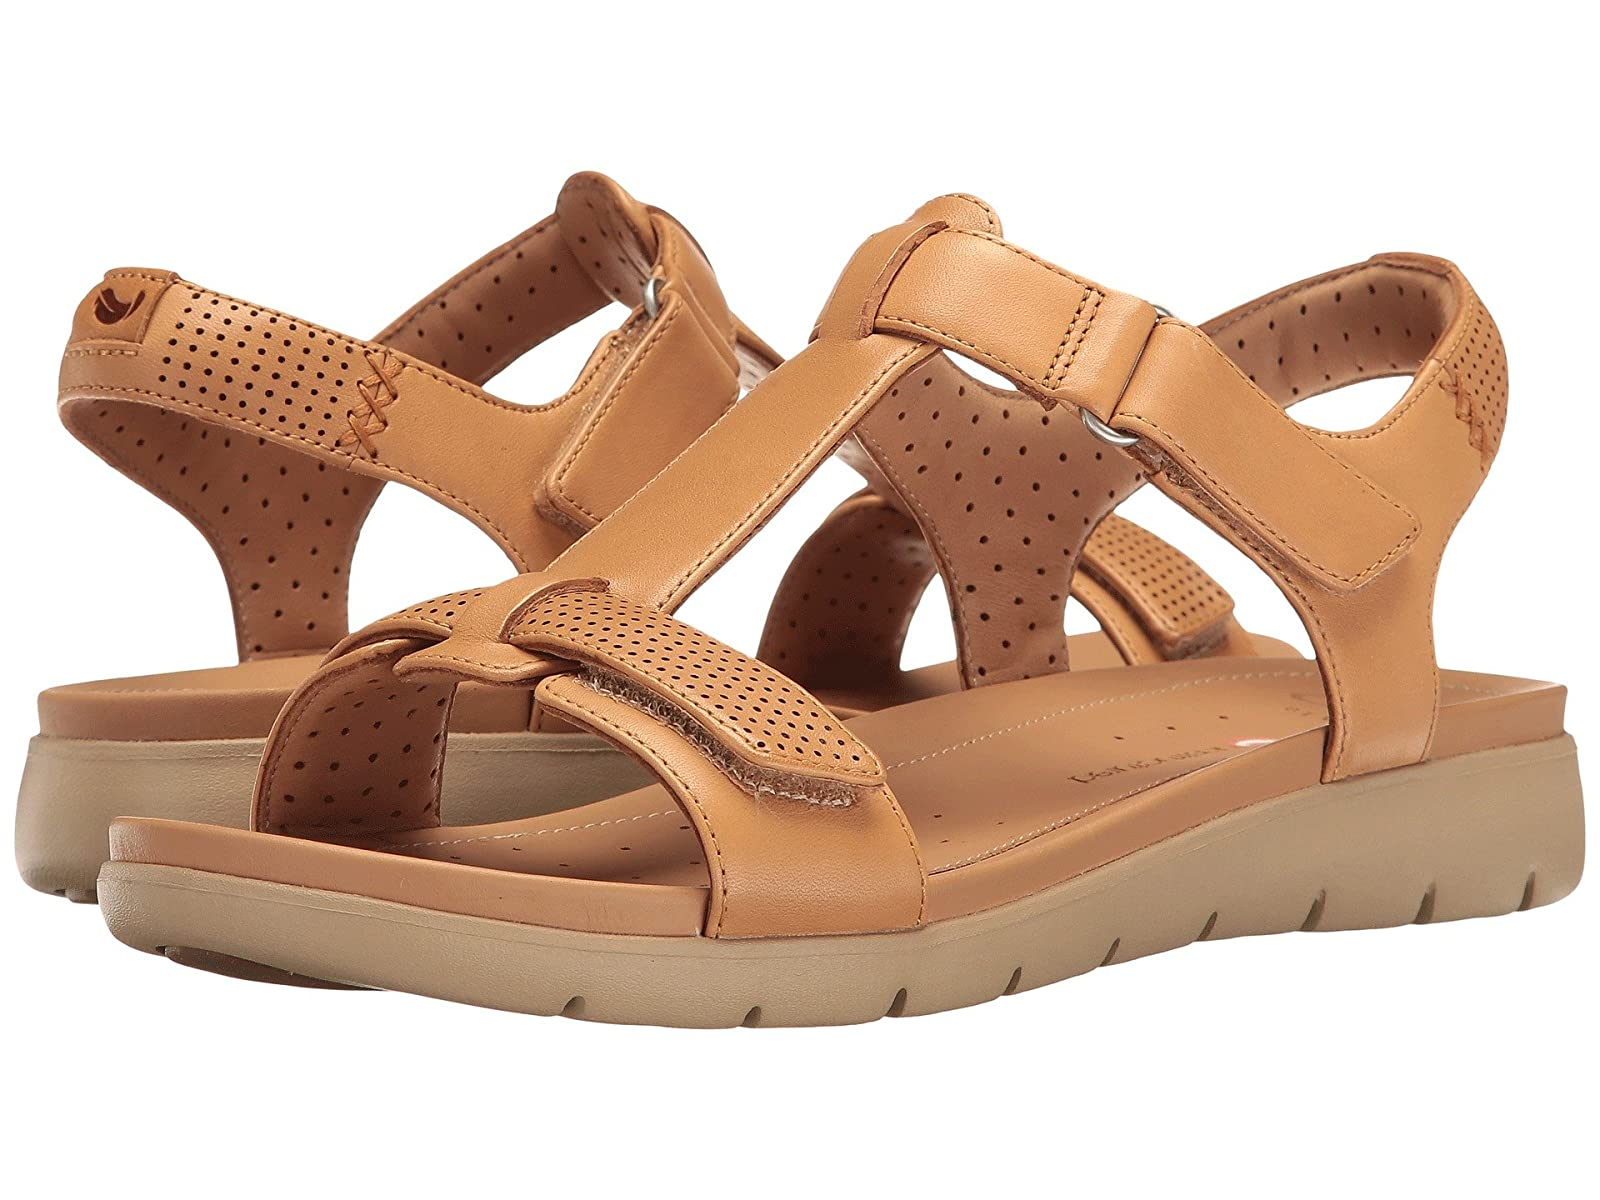 Clarks Un HaywoodCheap and distinctive eye-catching shoes